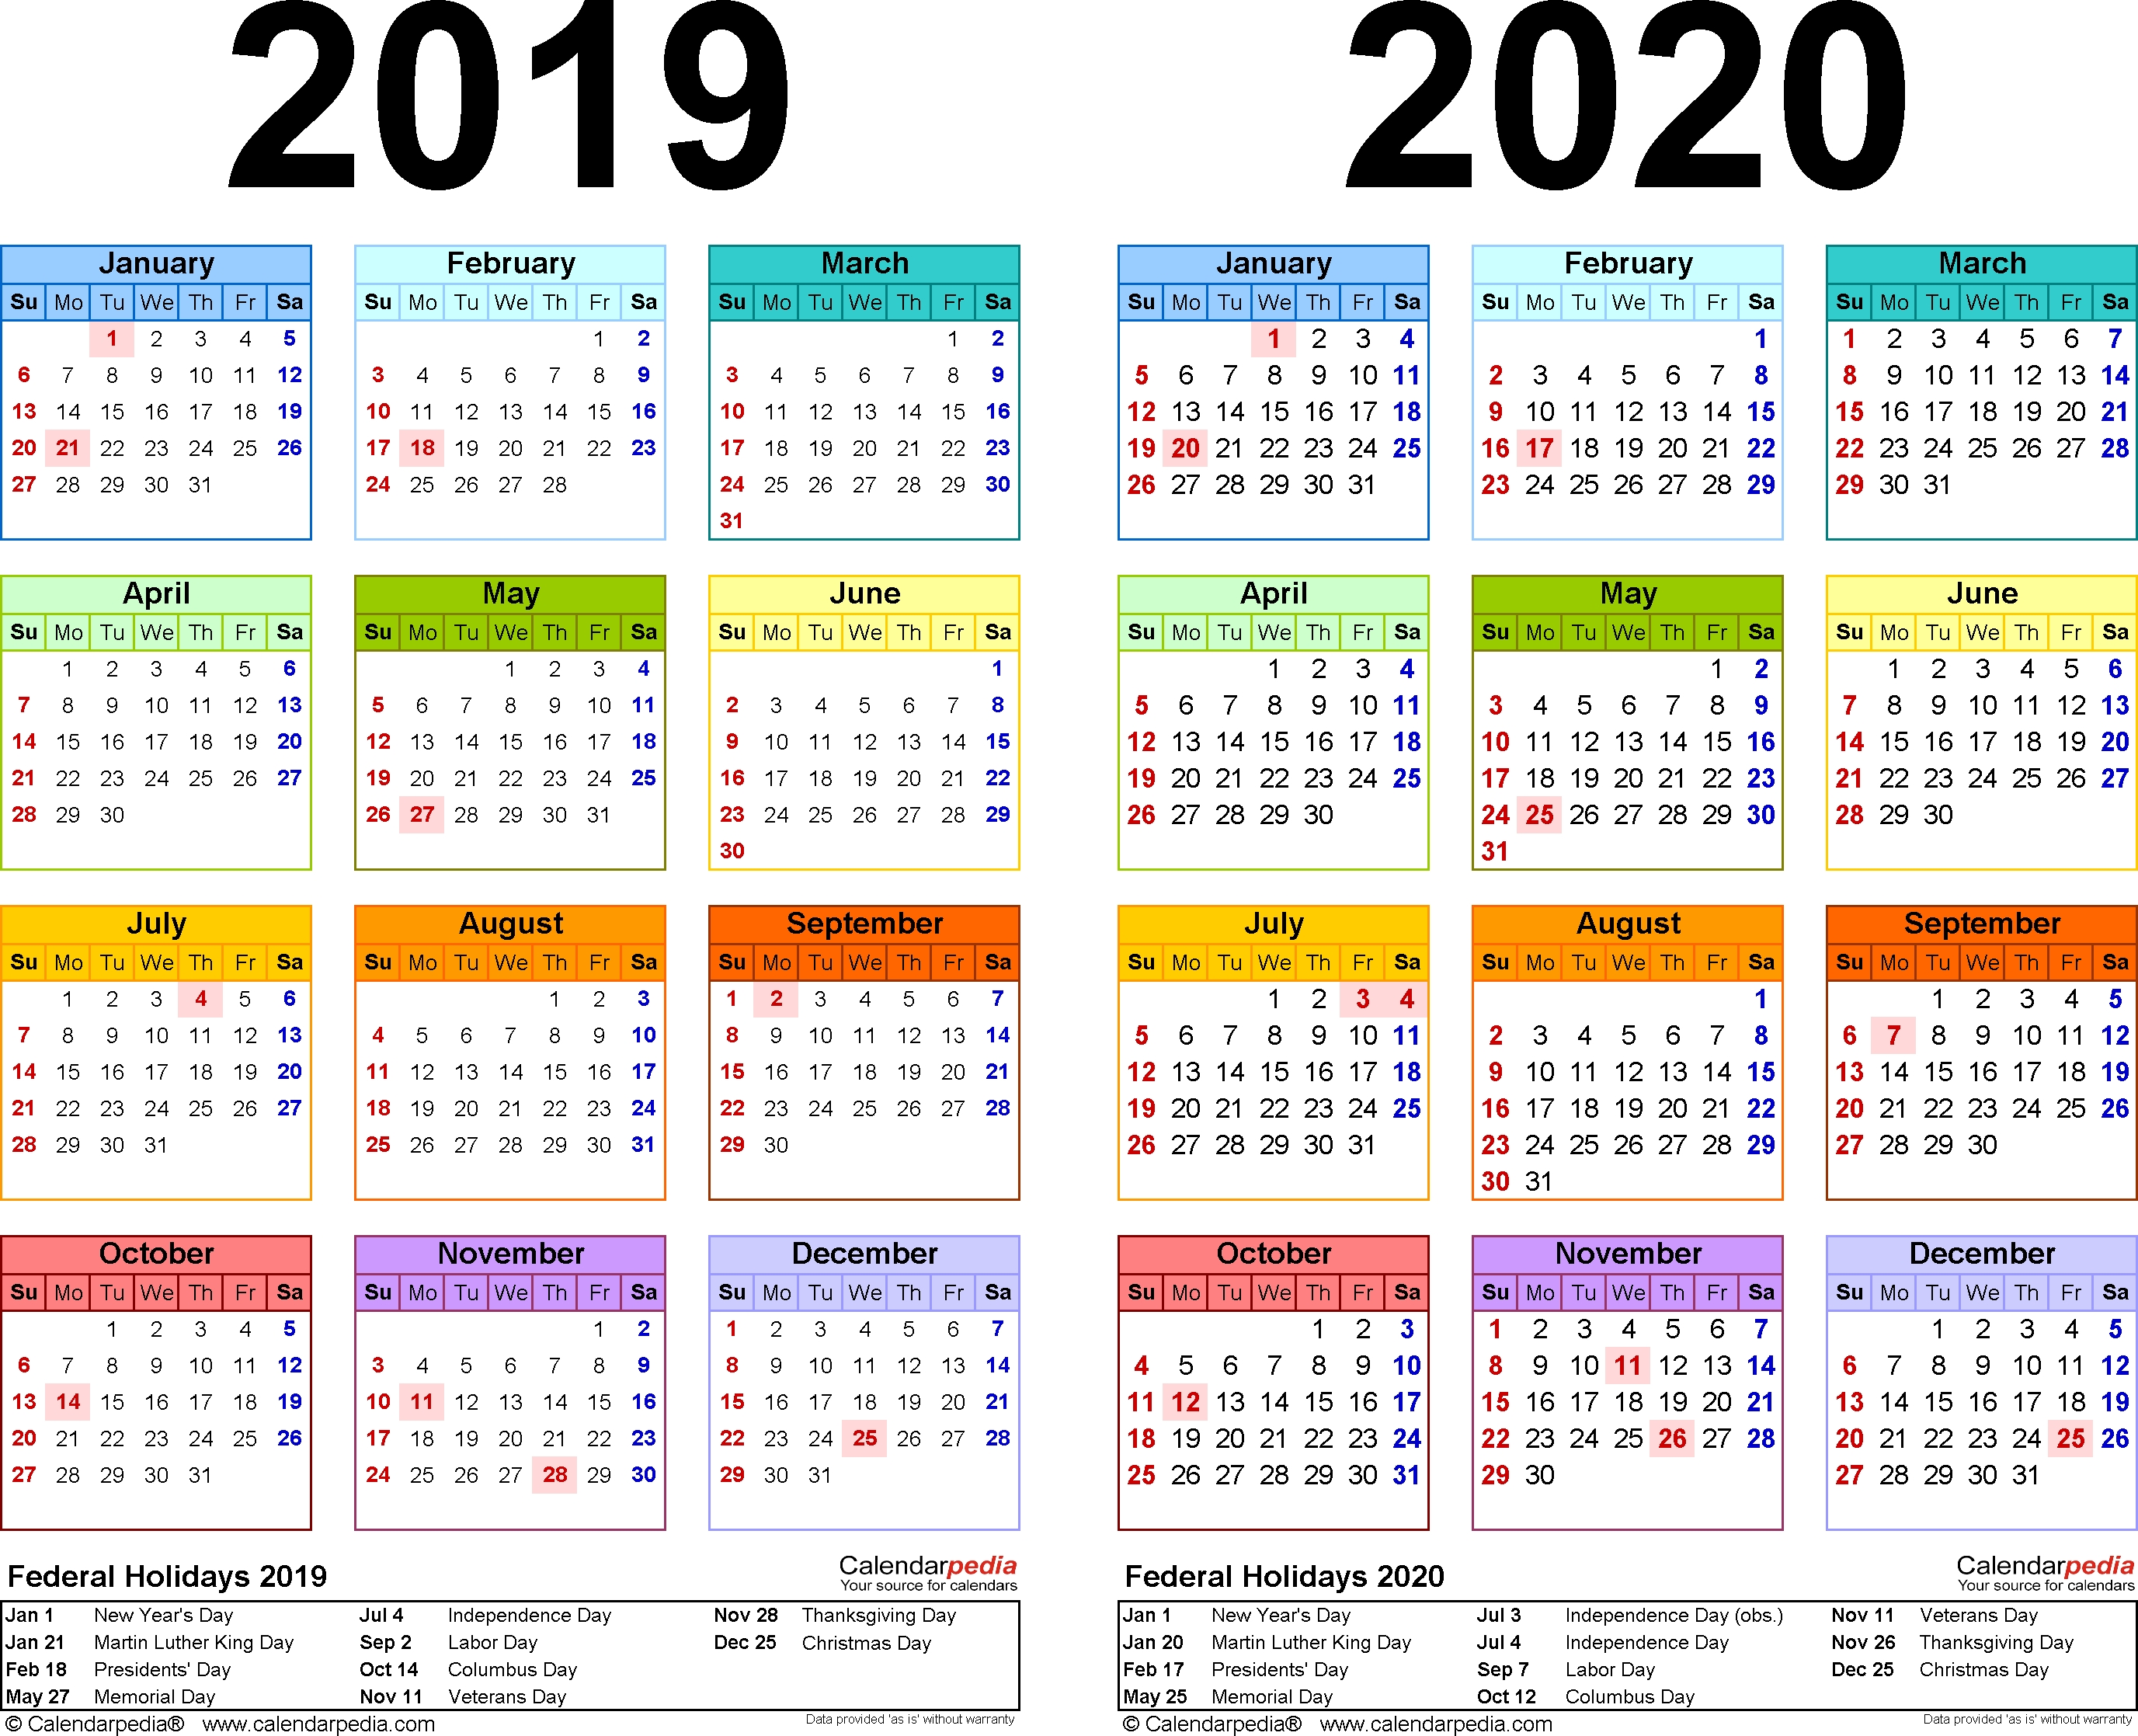 2019-2020 Calendar - Free Printable Two-Year Excel Calendars pertaining to A4 Yearly Calendars For 2019 And 2020